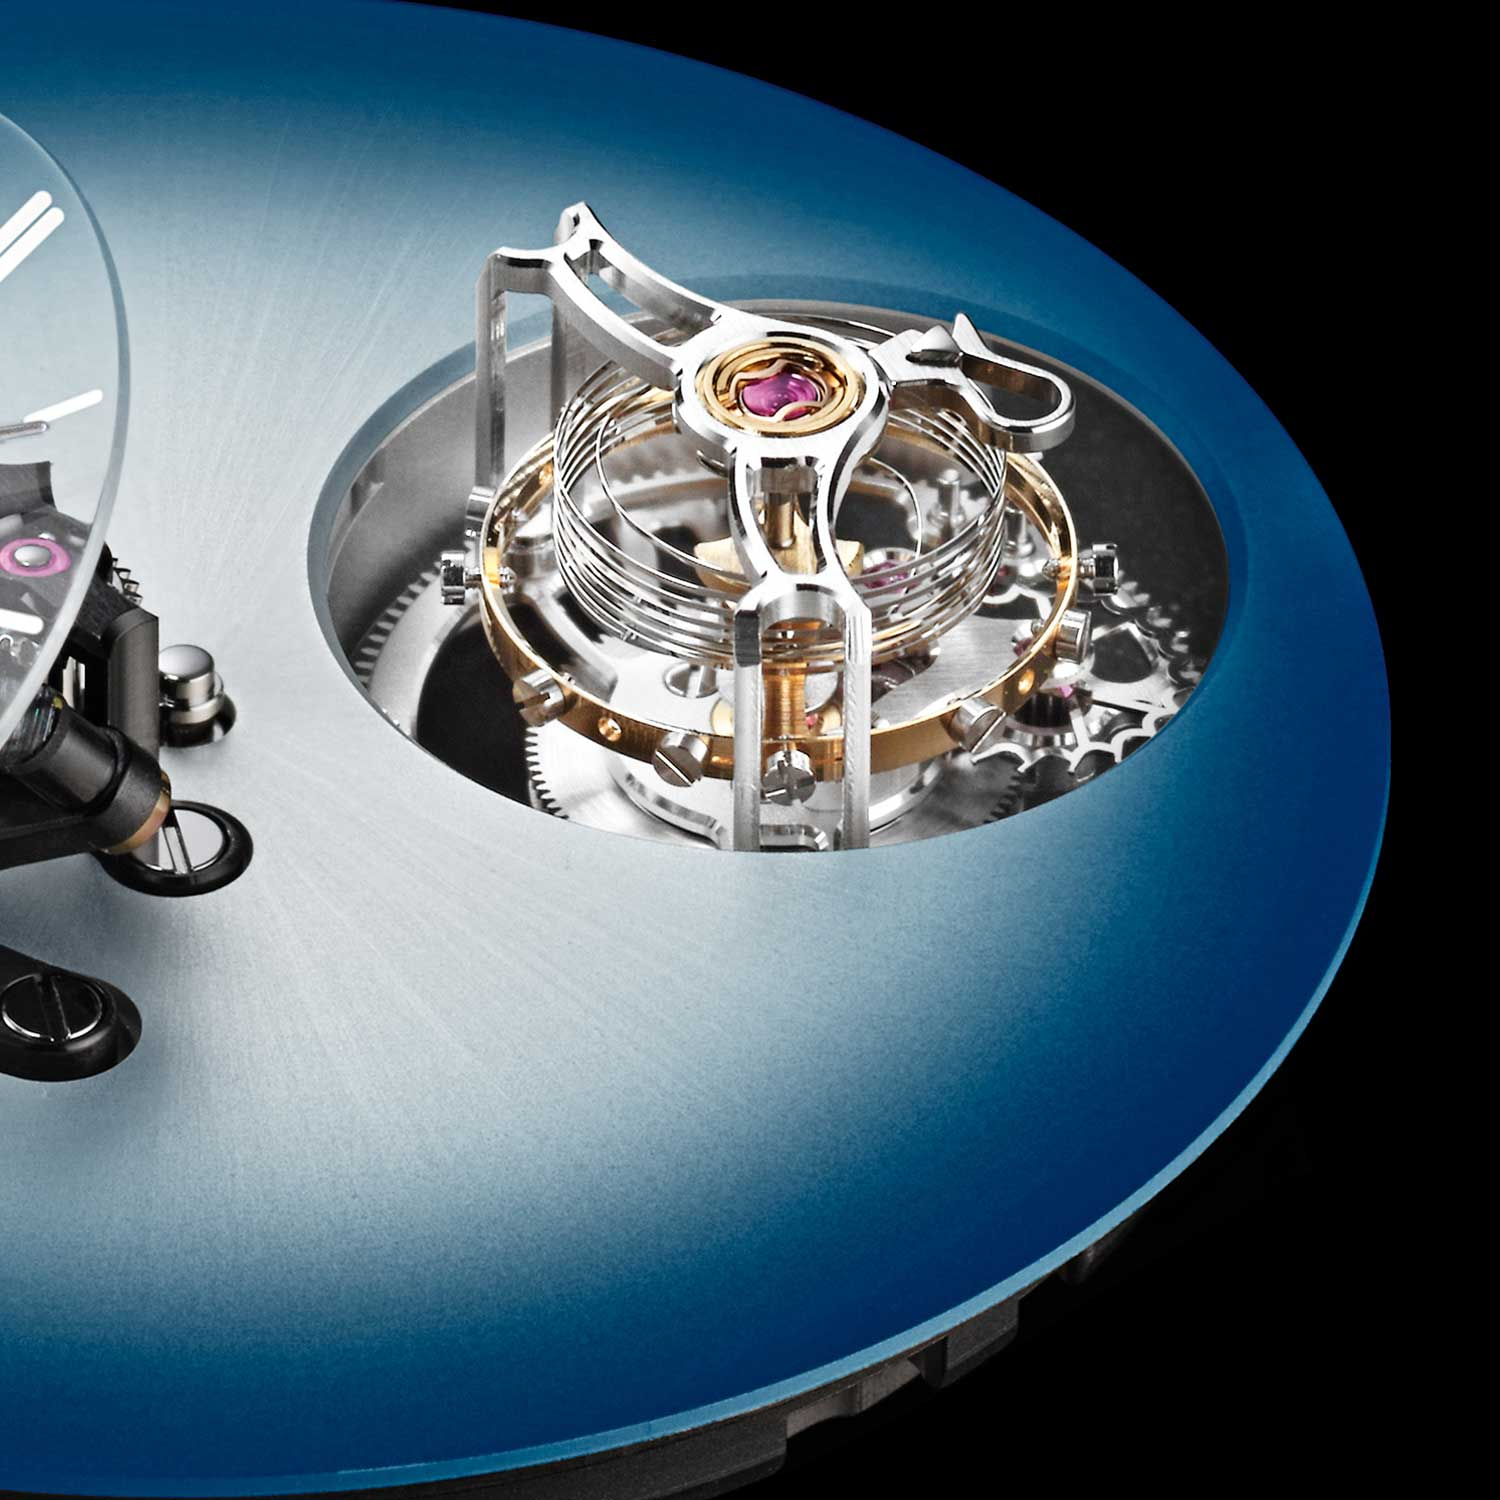 A closer look at the cylindrical tourbillon of the MB&F × H. Moser Endeavour Cylindrical Tourbillon with the Funky Blue dial